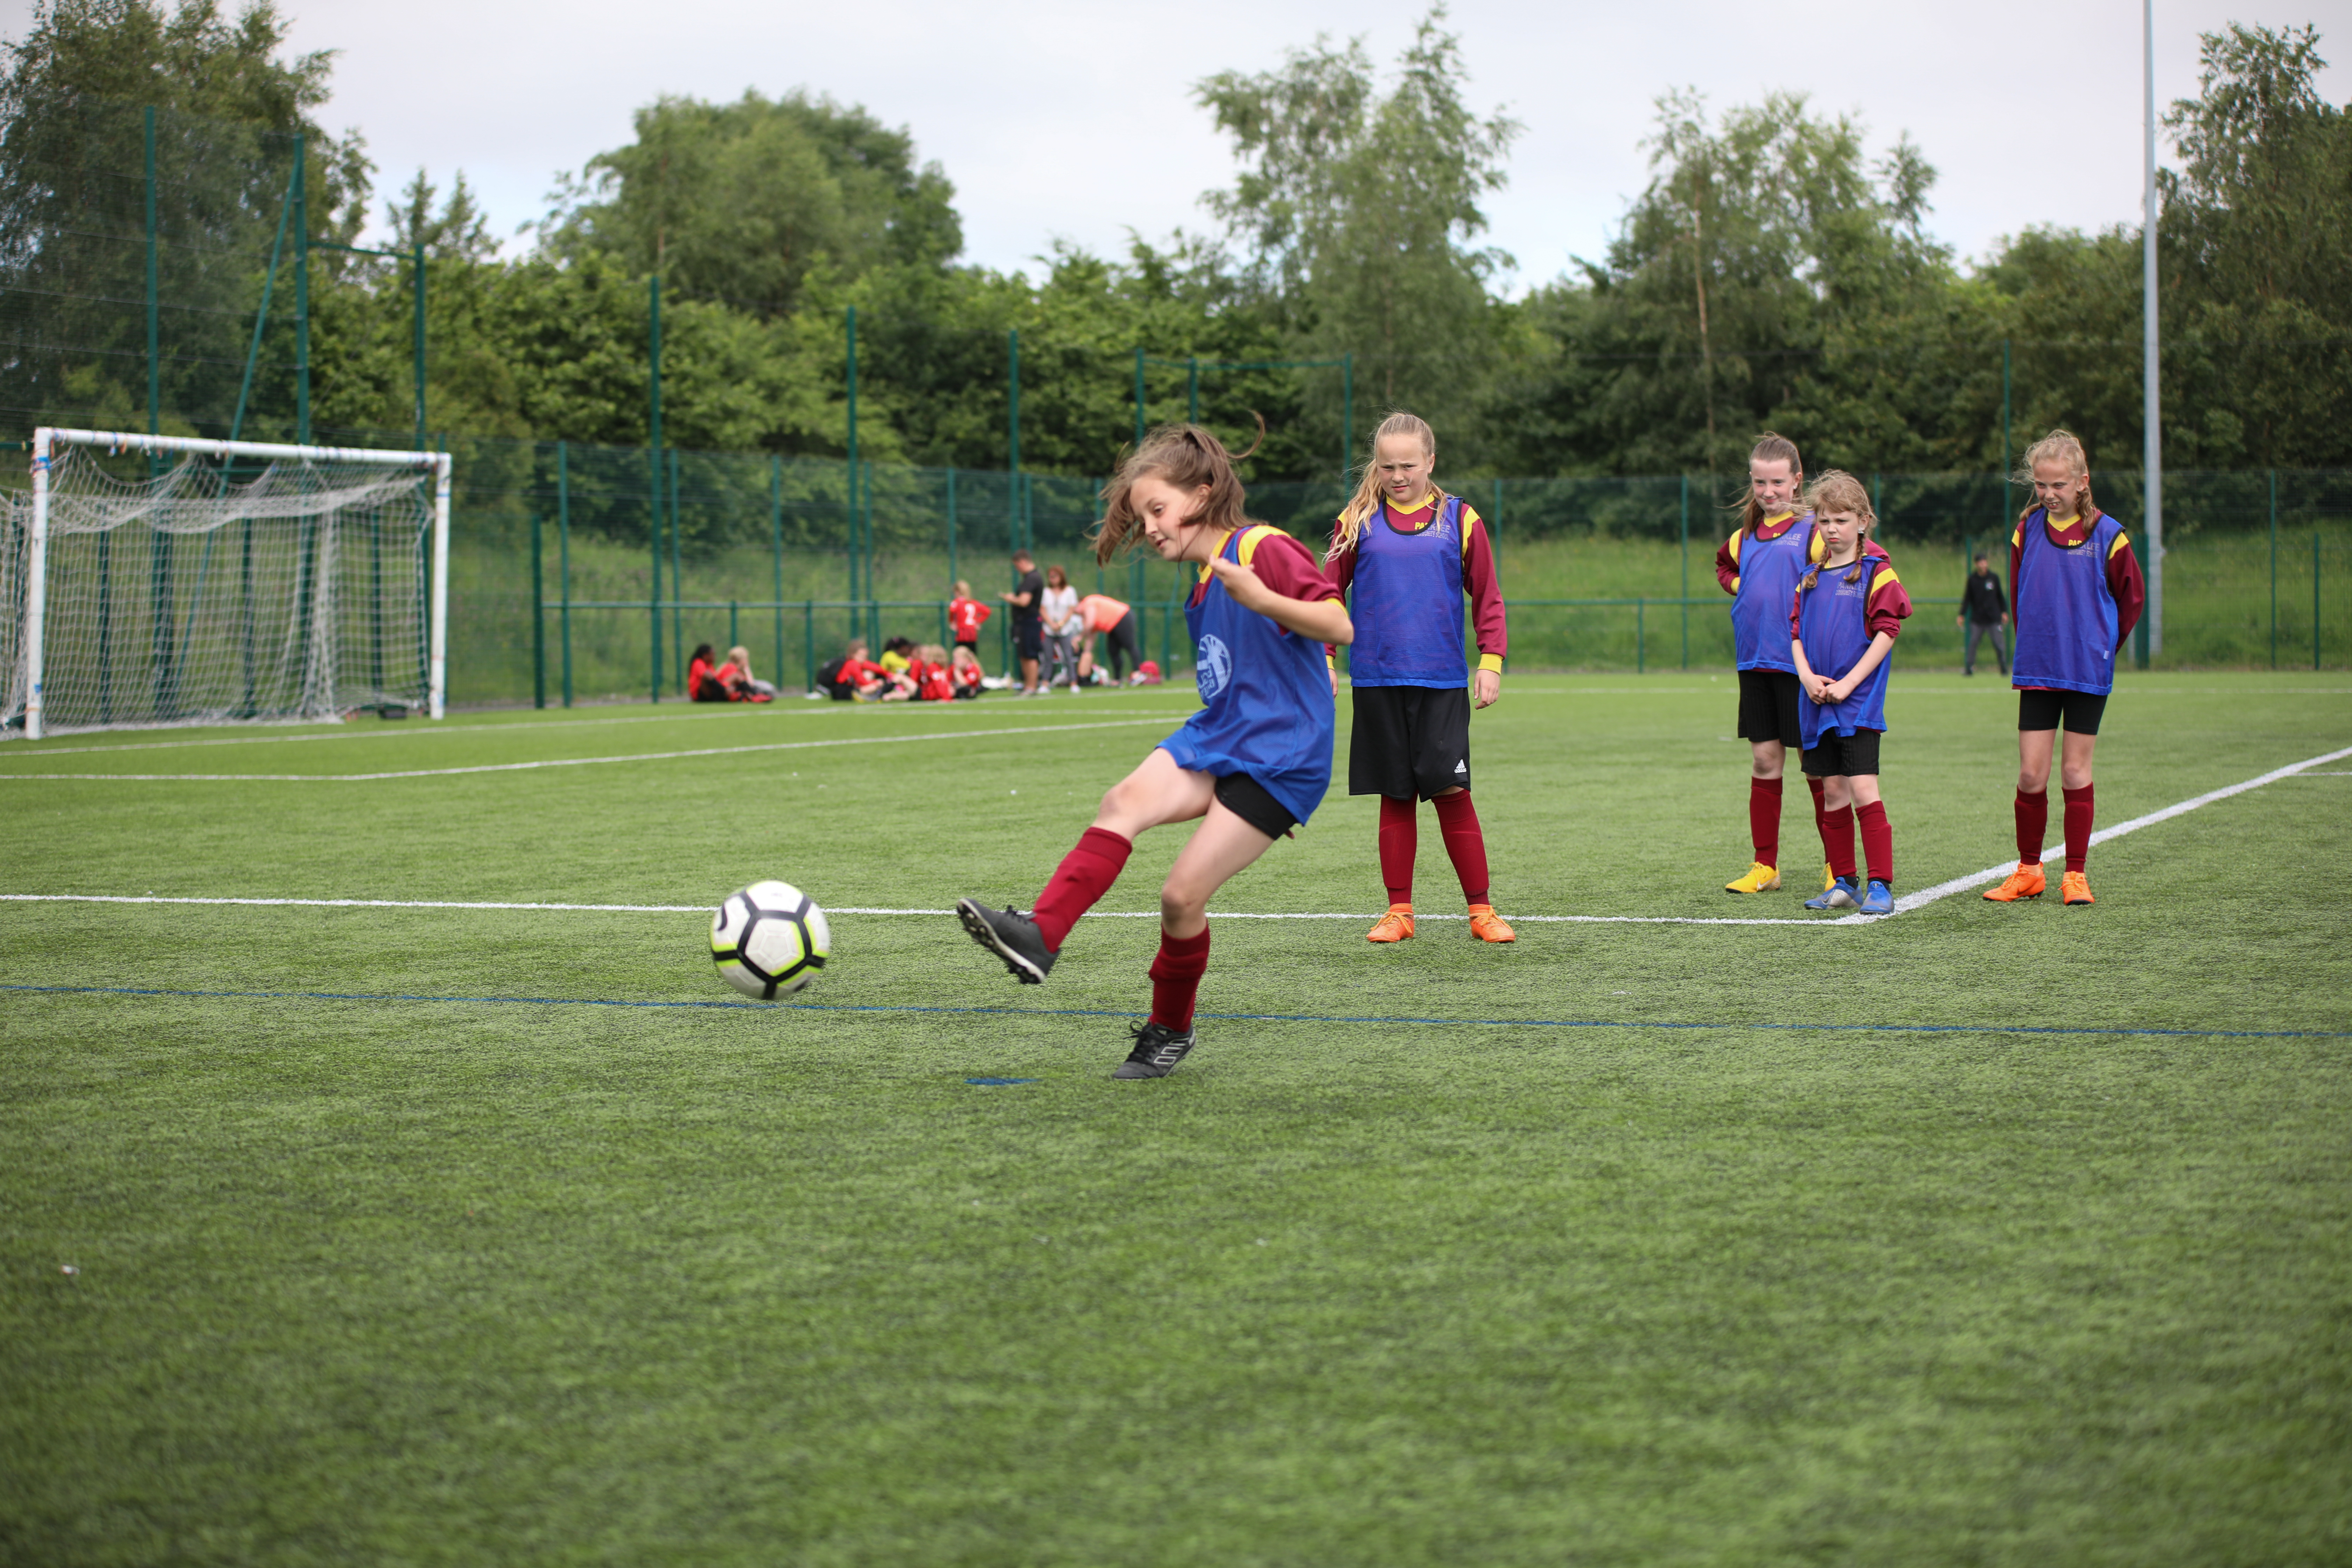 Group of young girls playing football